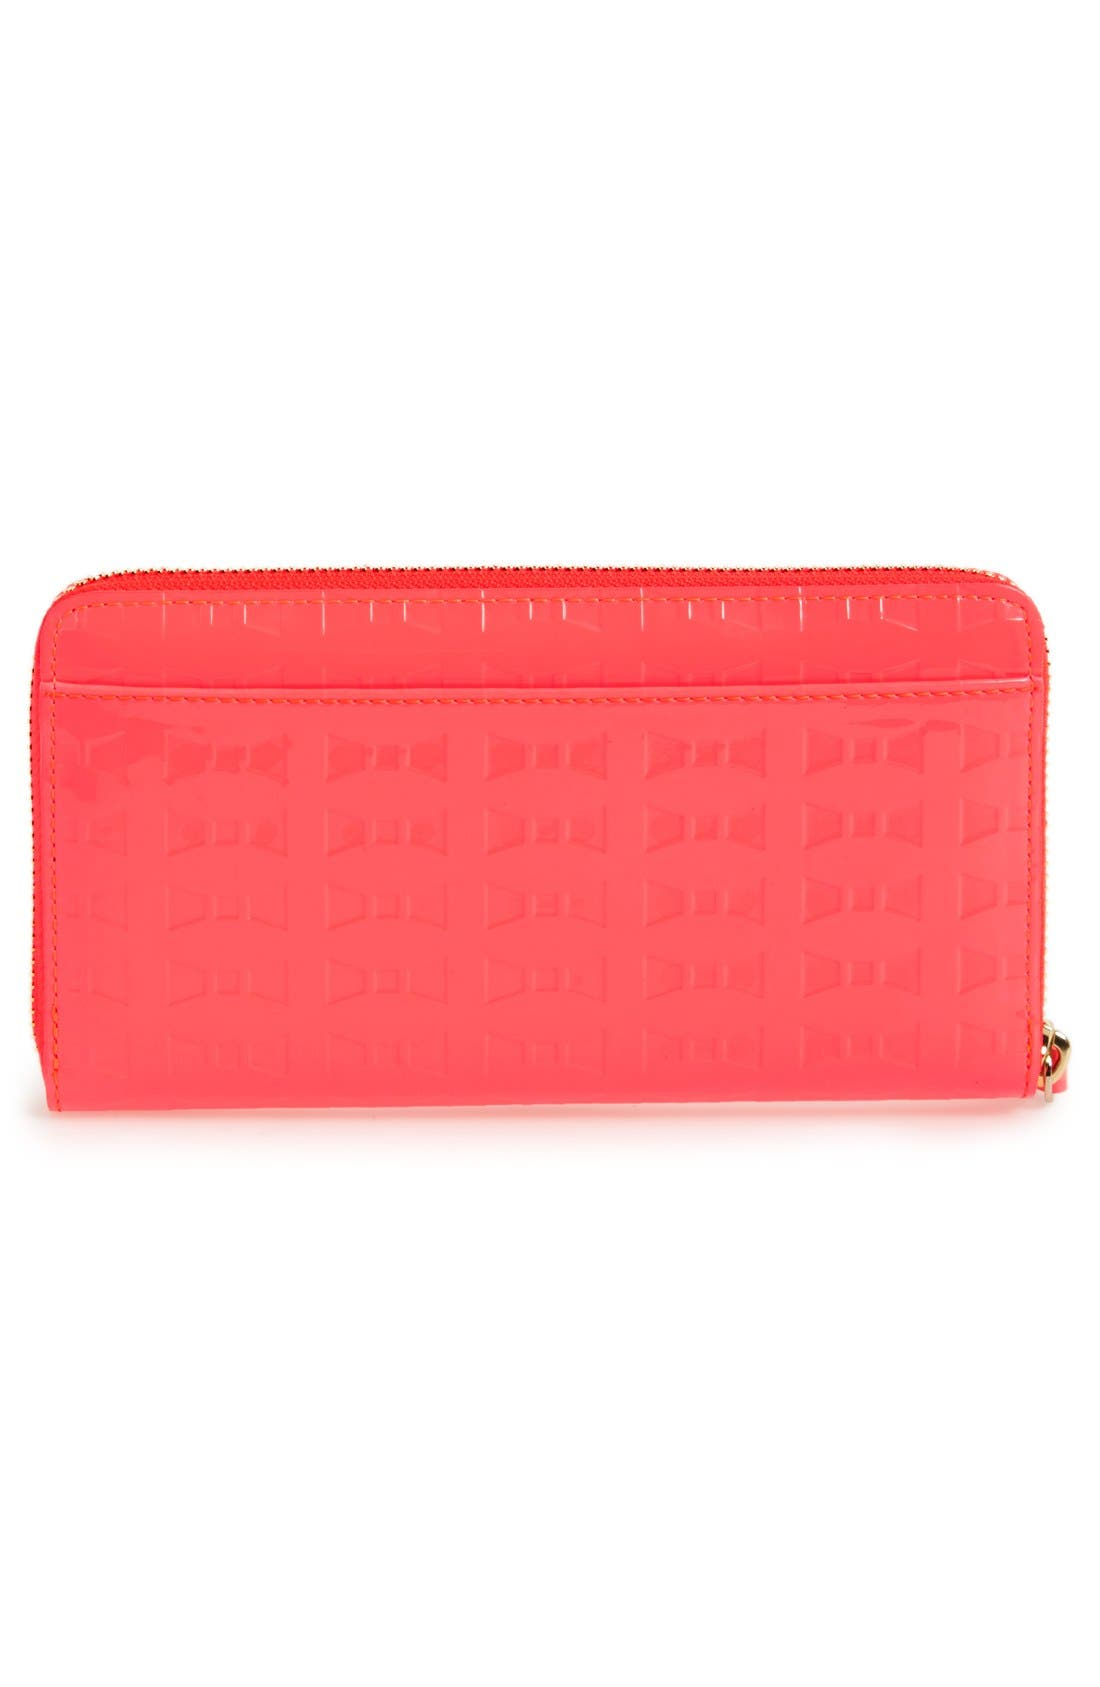 Alternate Image 3  - kate spade new york 'fancy that - lacey' wallet